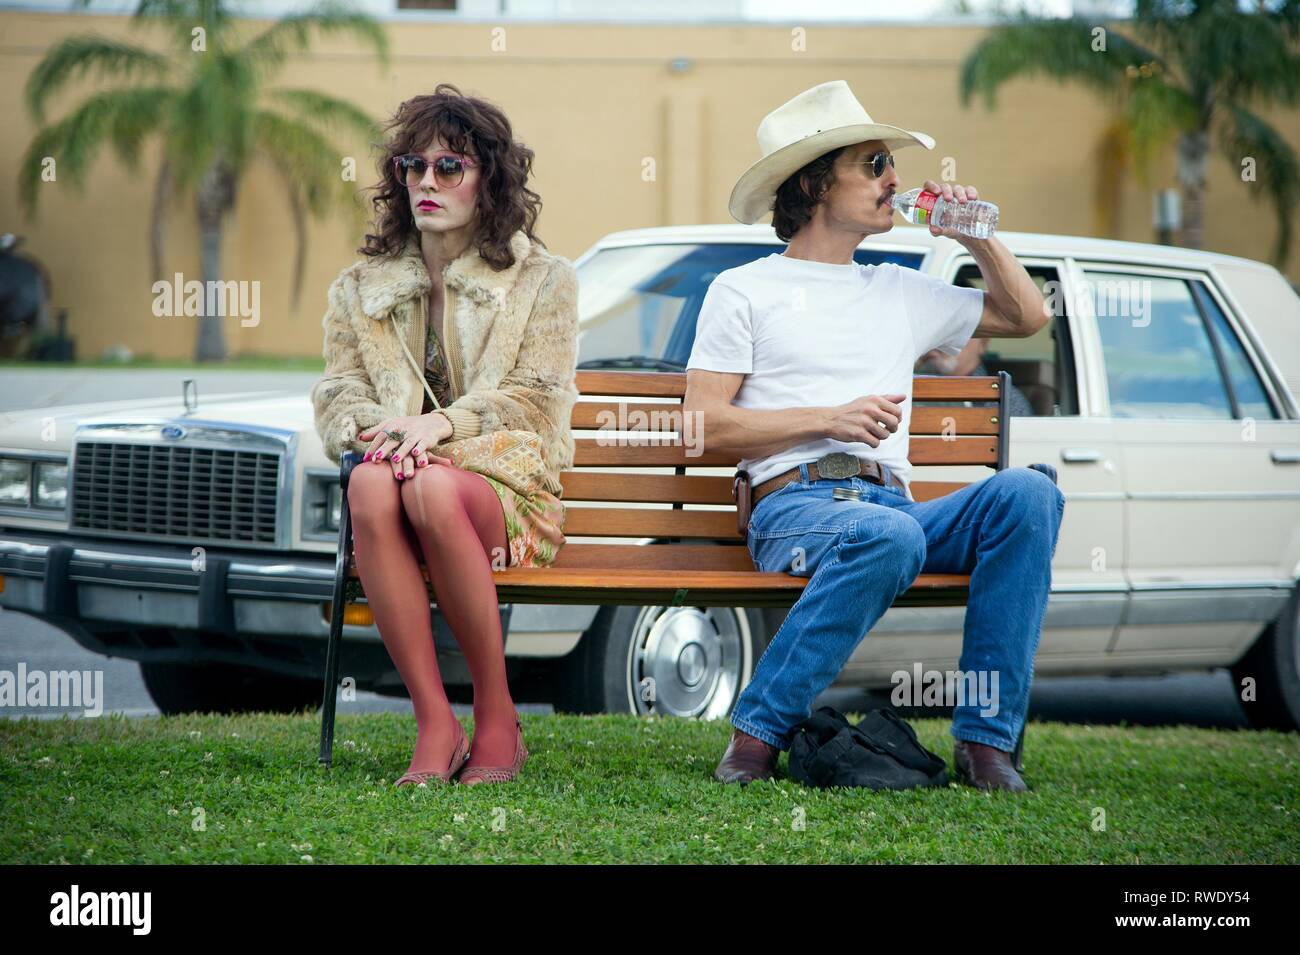 LETO,MCCONAUGHEY, DALLAS BUYERS CLUB, 2013 - Stock Image